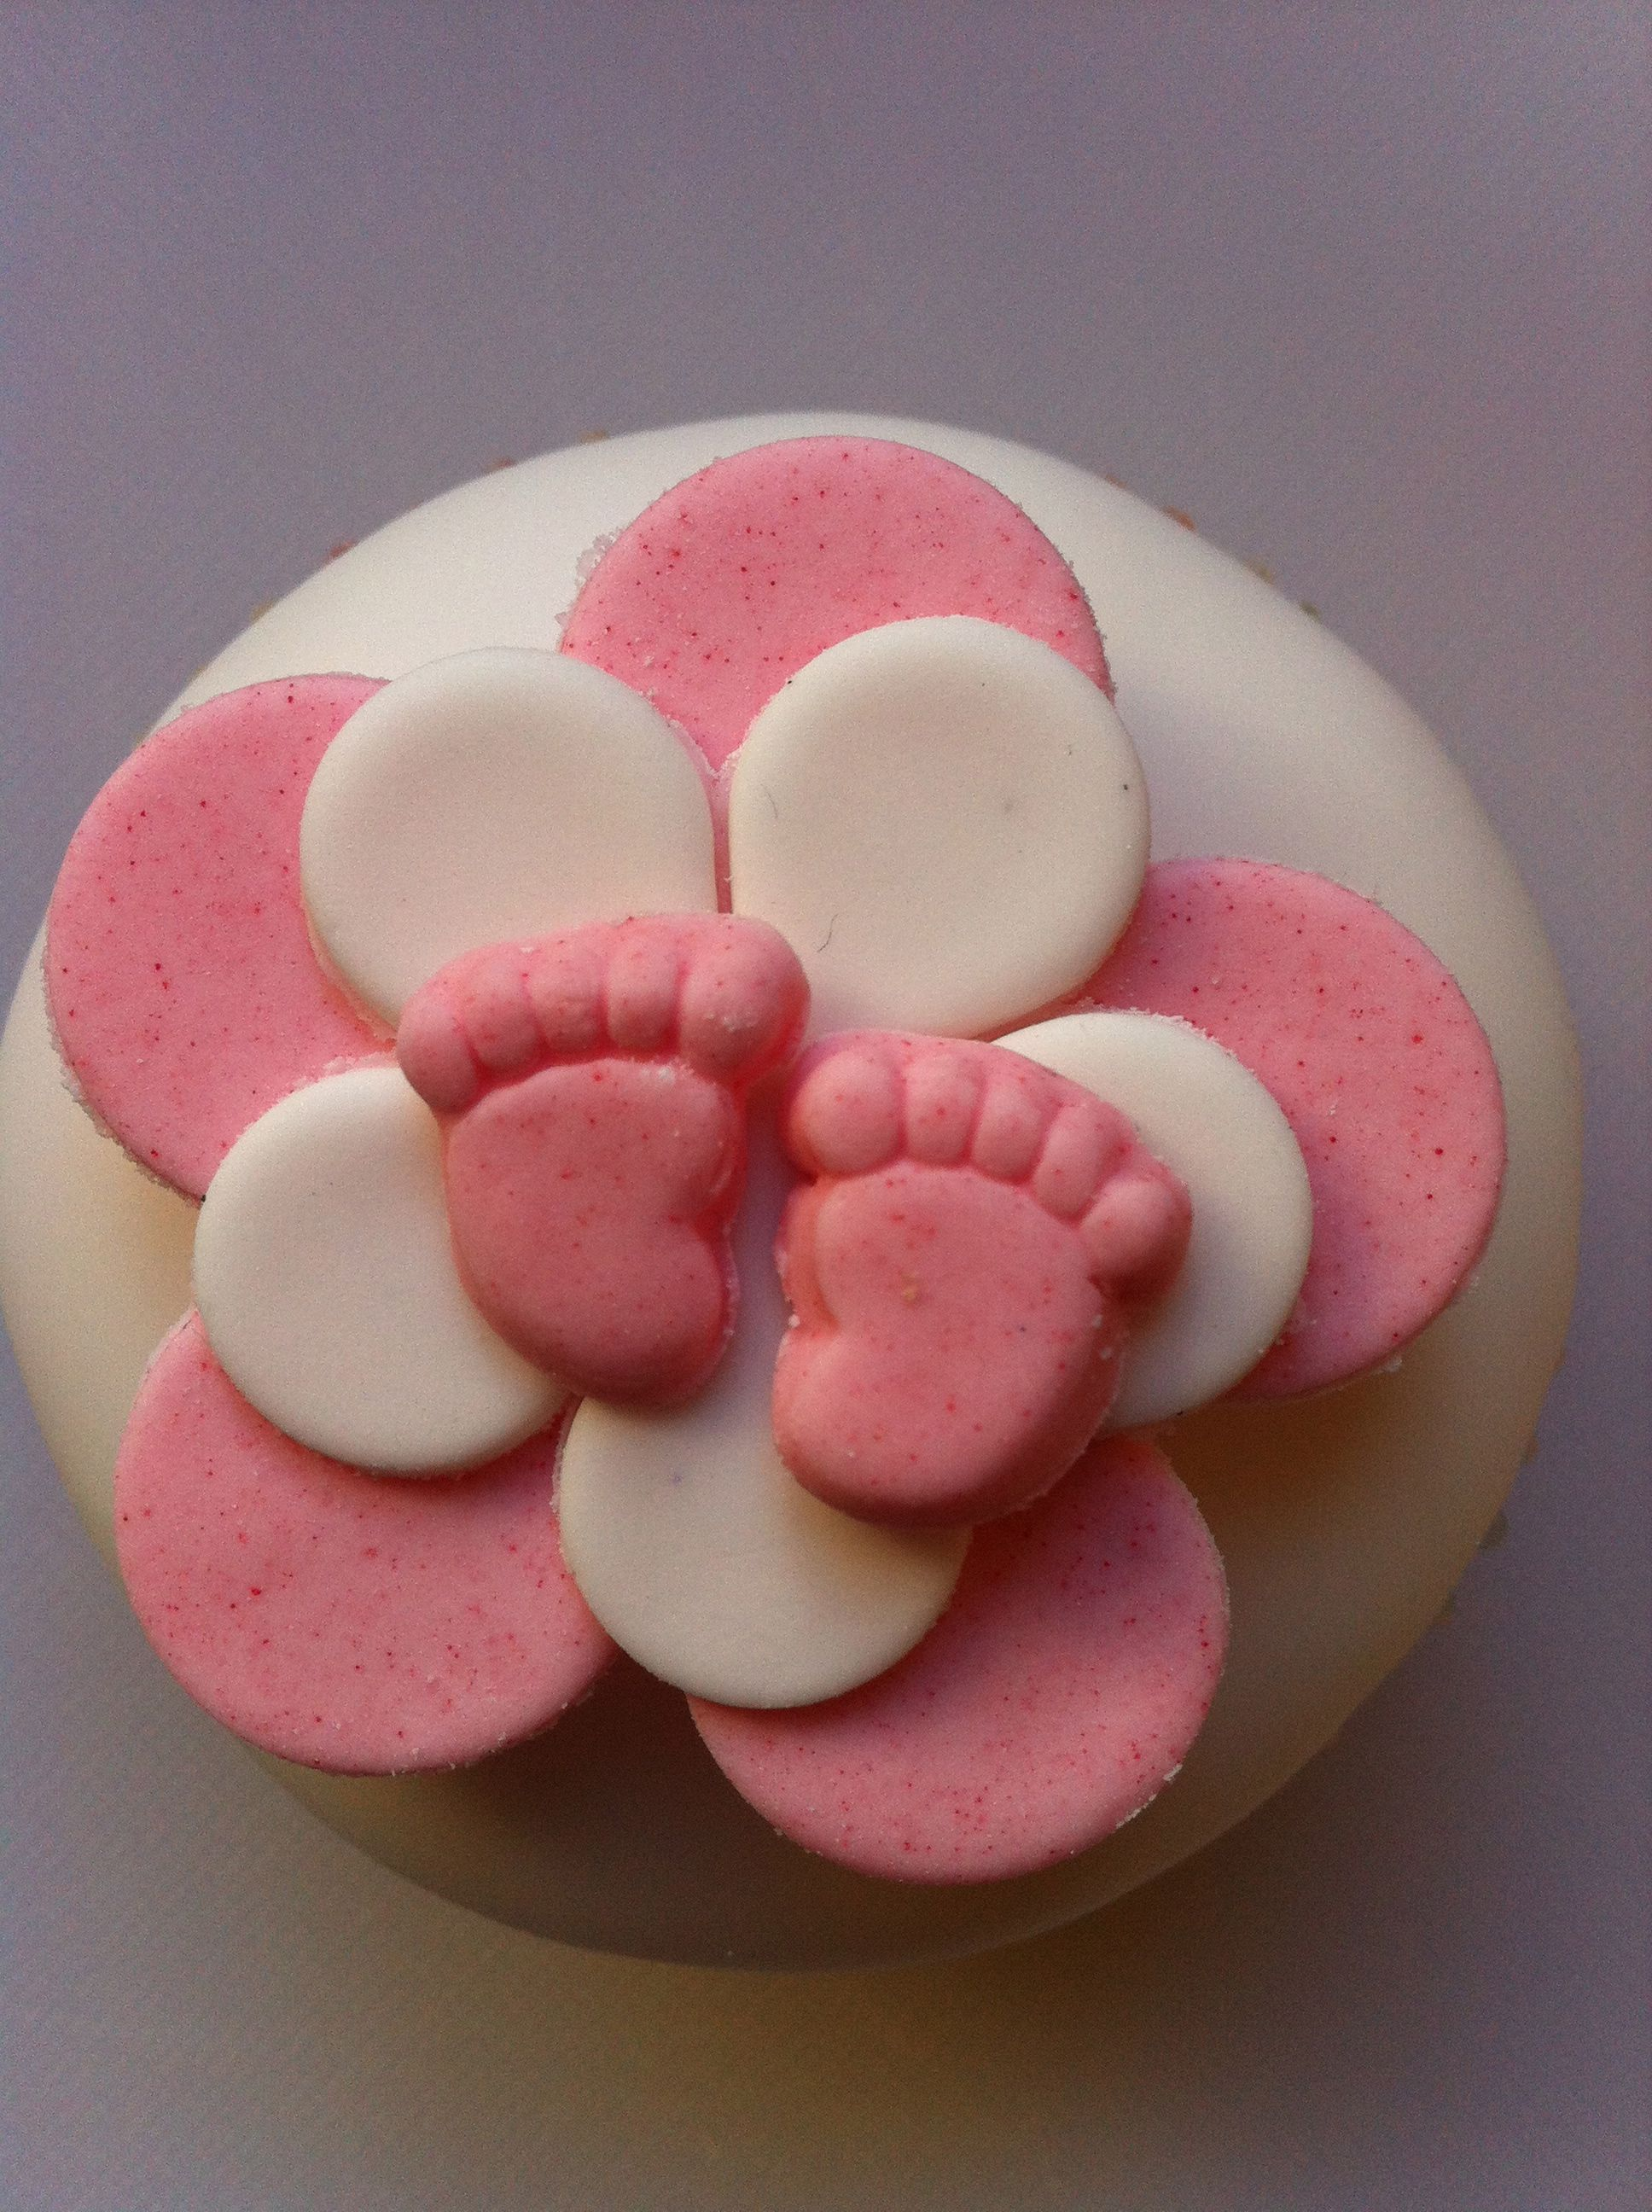 Pale pink and white flowers with pink baby feet! Too cute! Ideal for baby showers and gifts for new parents www.chippingnortonteaset.co.uk